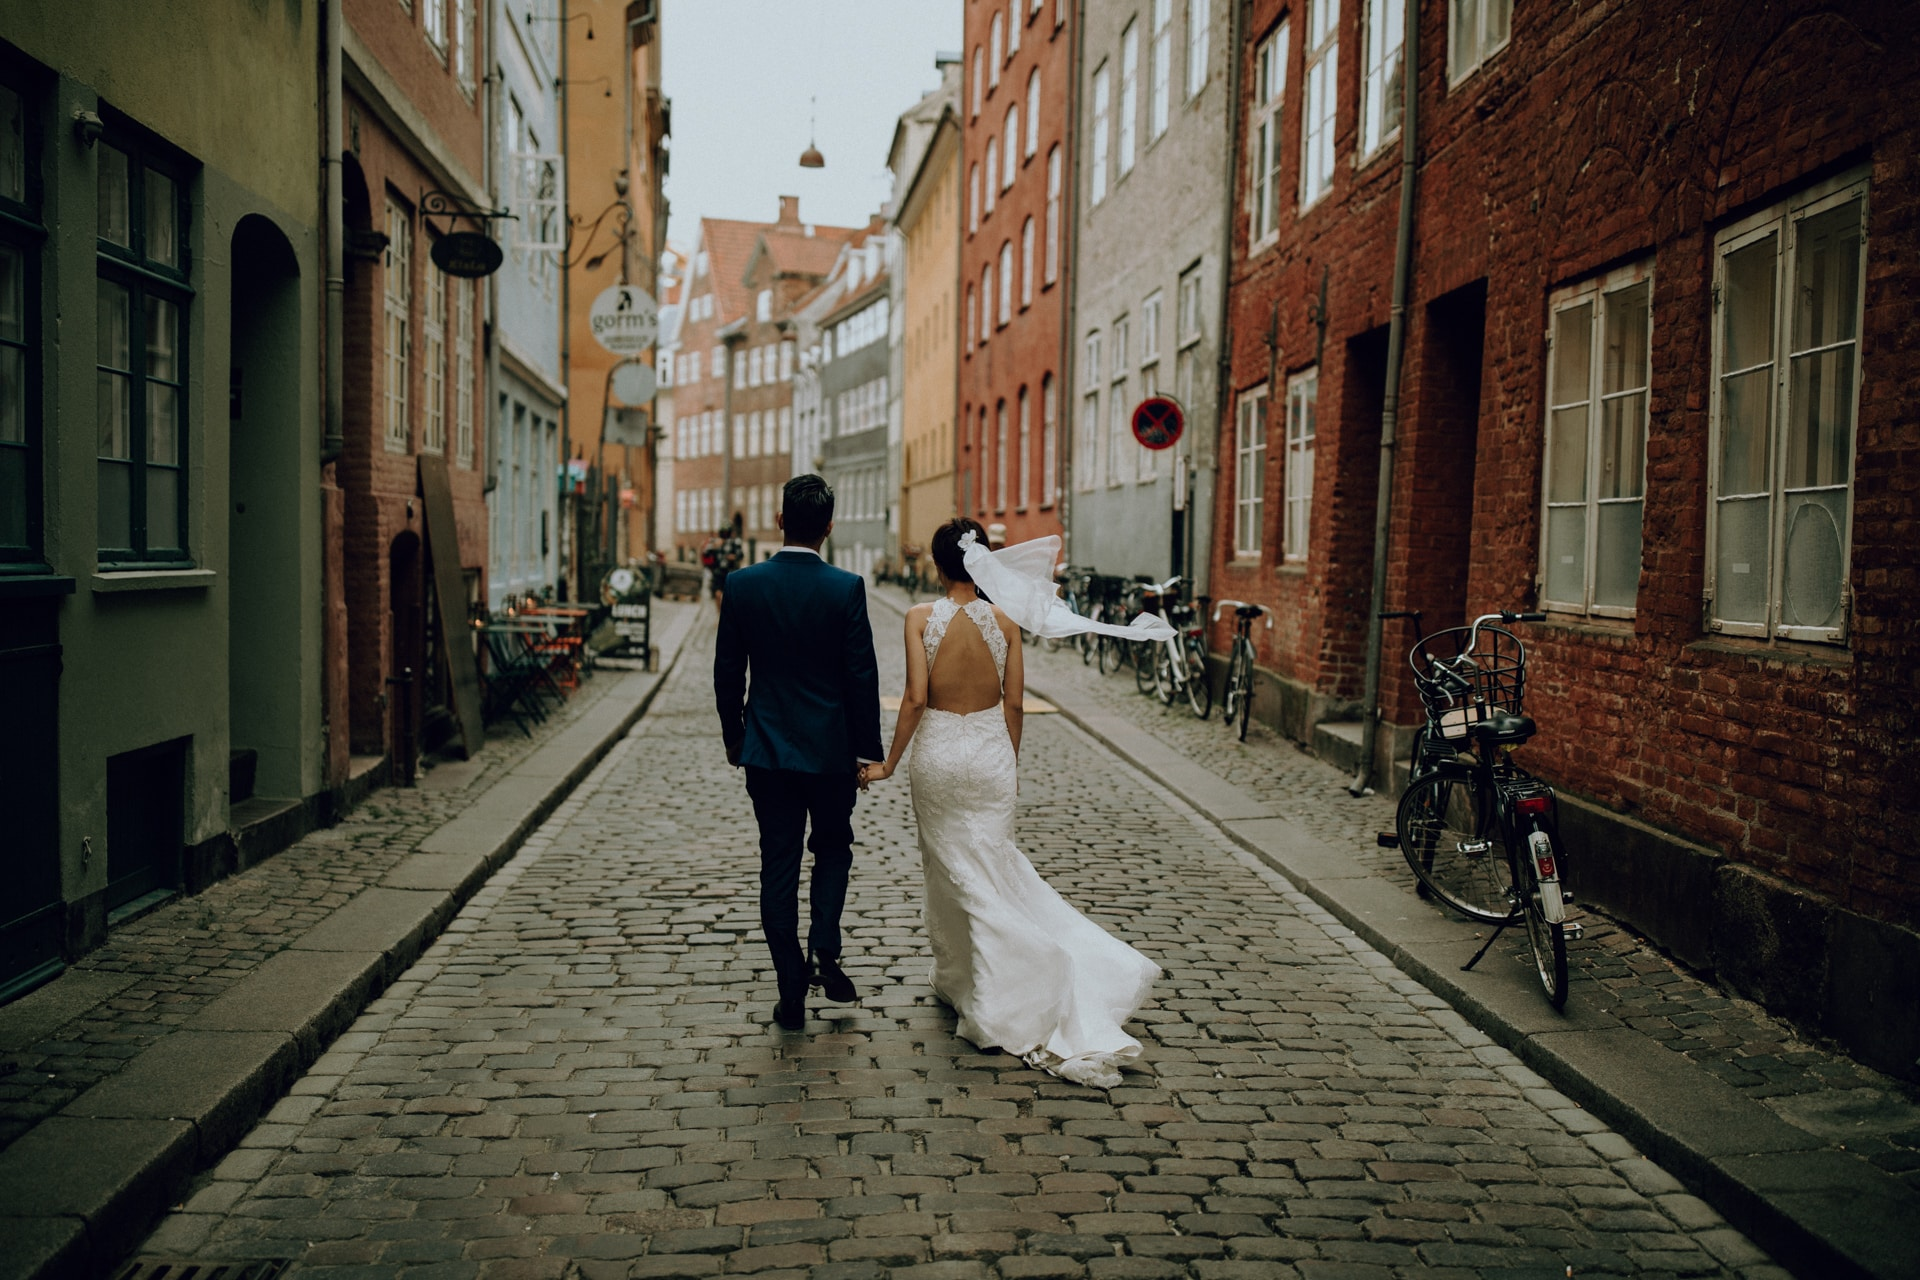 The wedding couple is walking through the old town of Copenhagen.